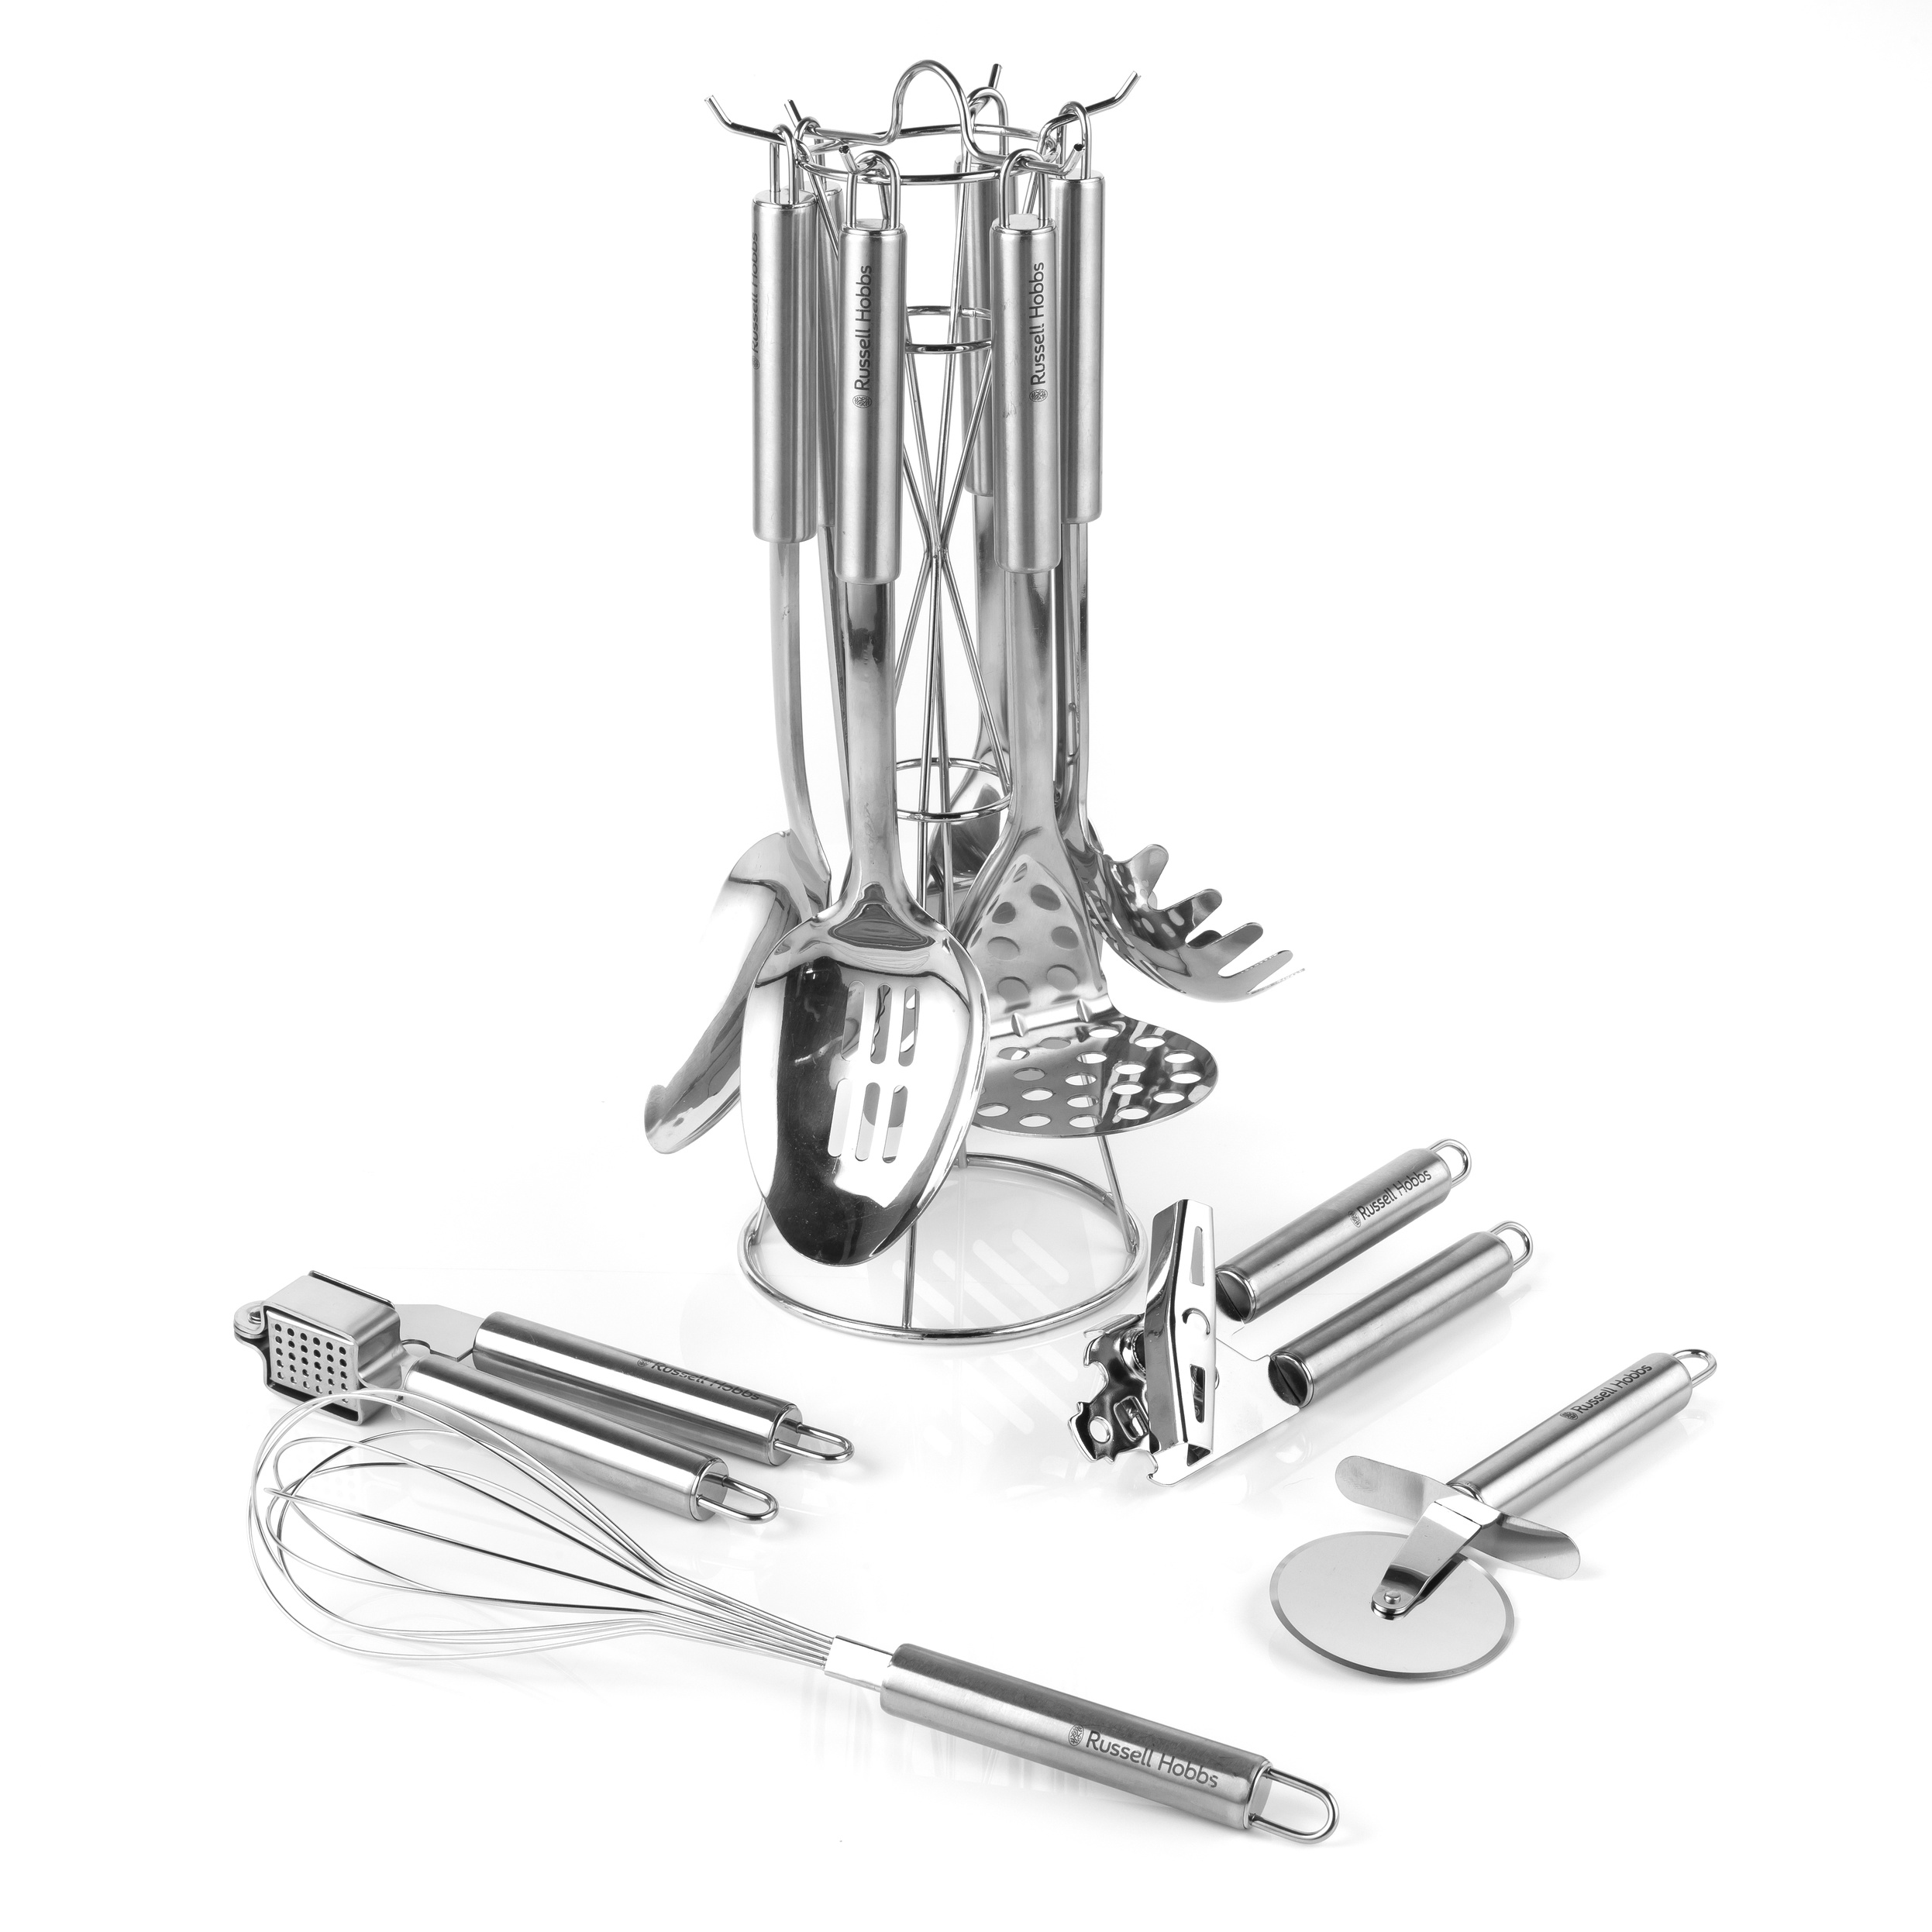 Russell Hobbs COMBO-2096 Stainless Steel Kitchen Utensil Set with Stand and  Kitchen Tool Set, 10 Piece